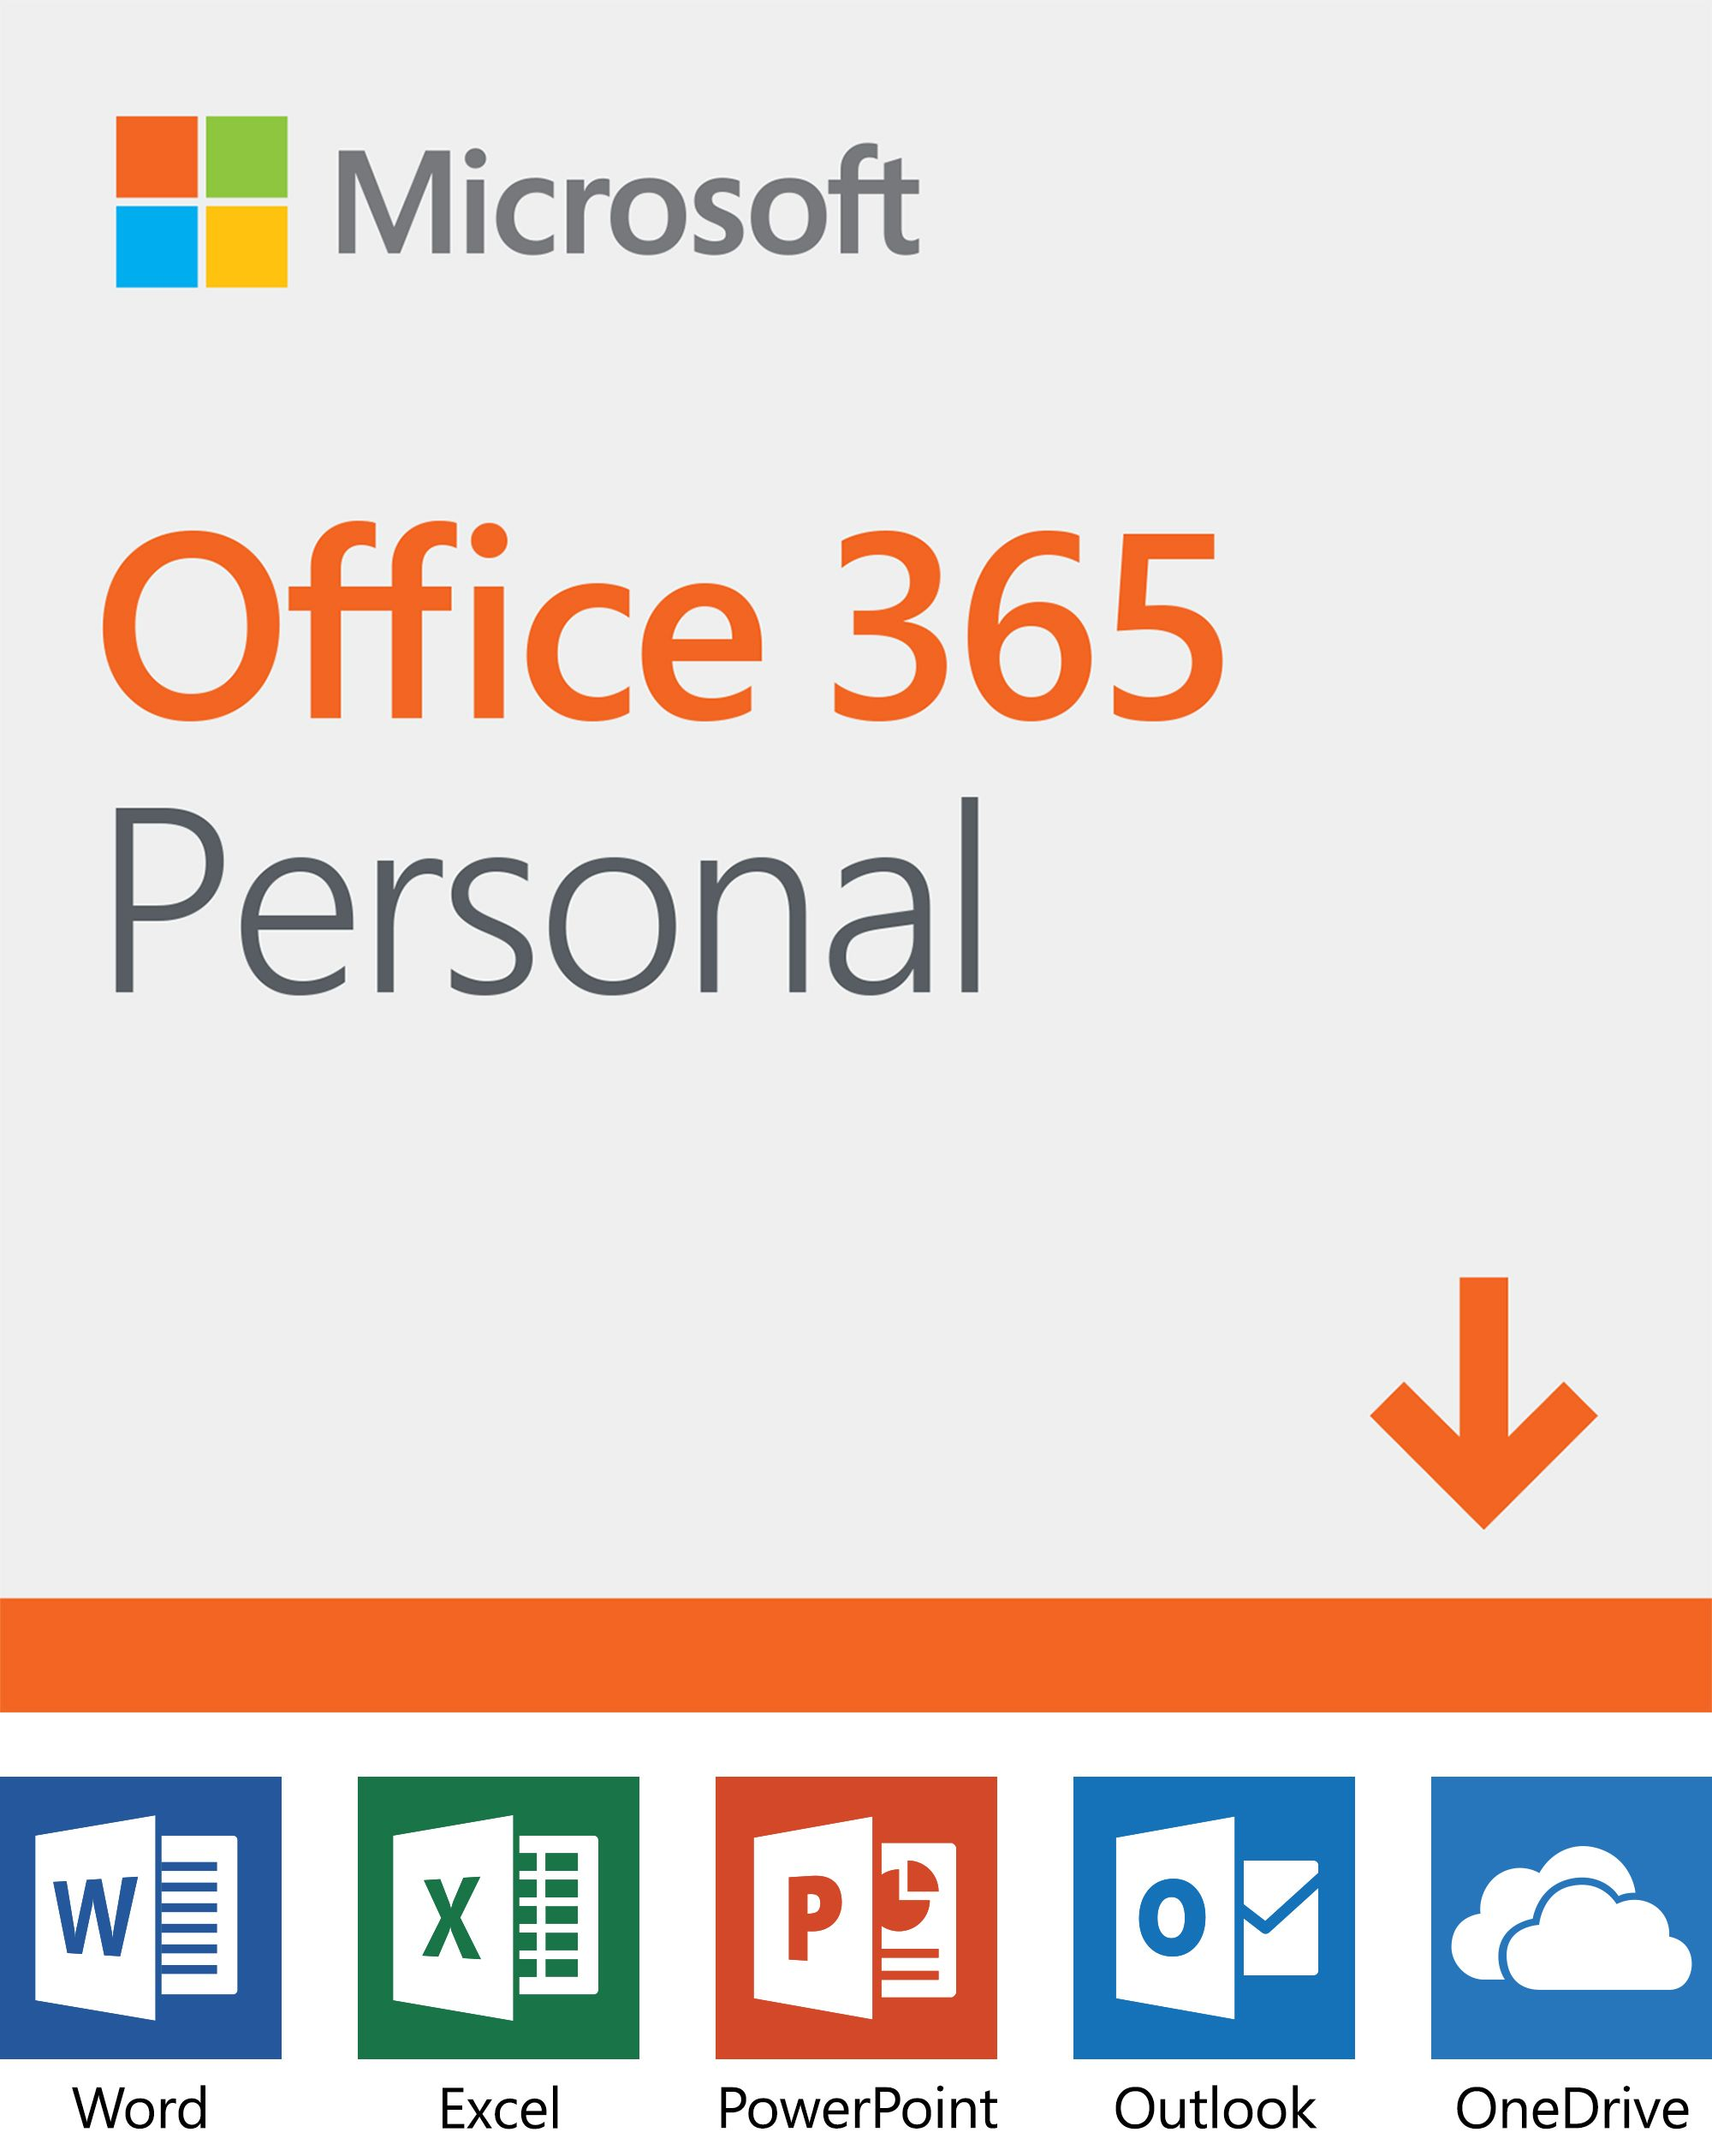 Microsoft 365 Personal 12 Month Subscription 1 Person Premium Office Apps 1tb Onedrive Cloud Storage Pc Mac Download Walmart Com Office 365 Personal Microsoft Office Microsoft